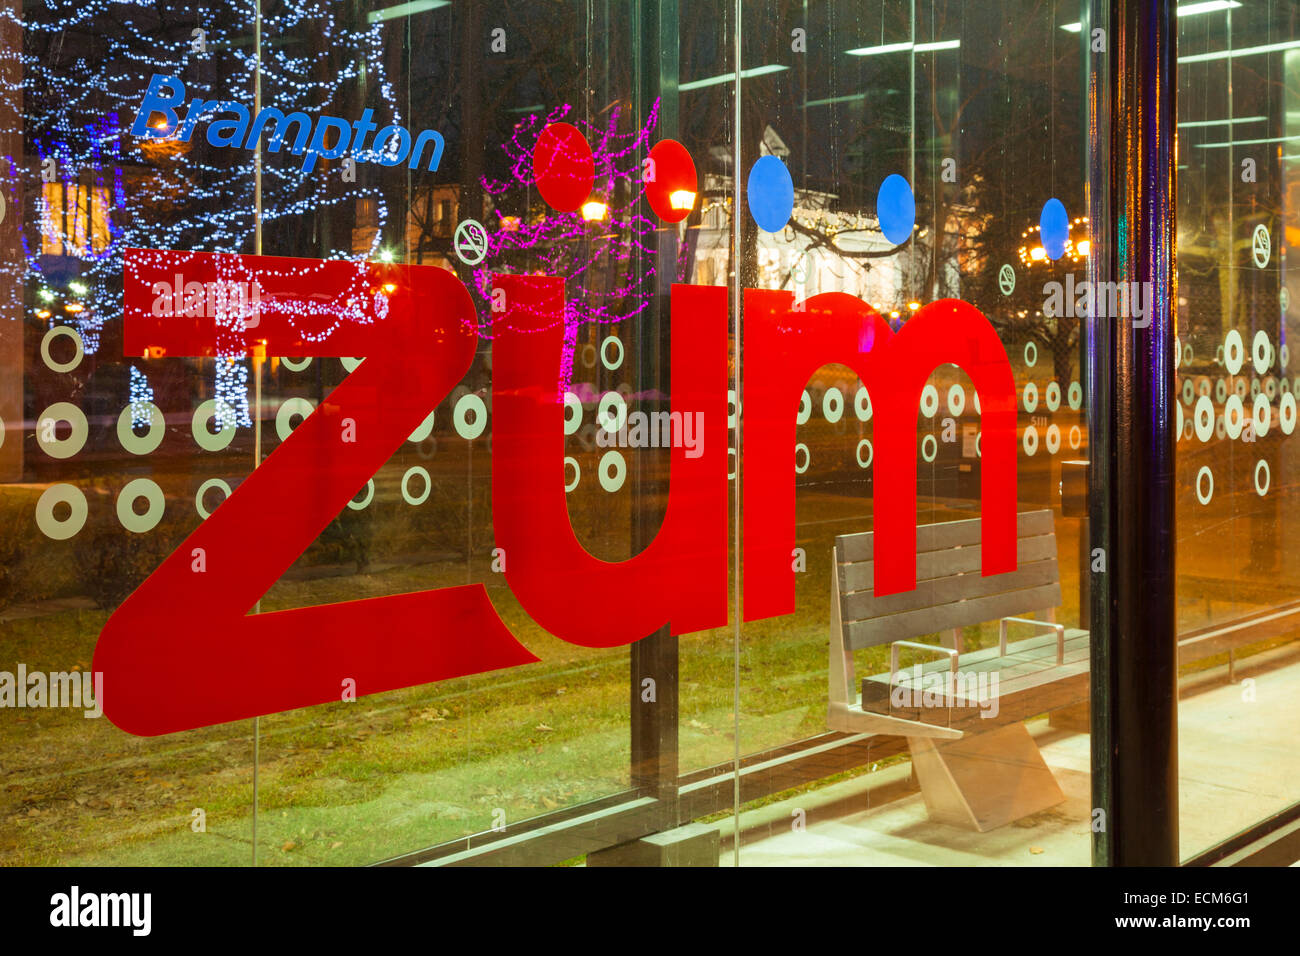 The Züm rapid transit logo with Christmas Lights reflected in the glass. Downtown Brampton, Ontario, Canada. - Stock Image